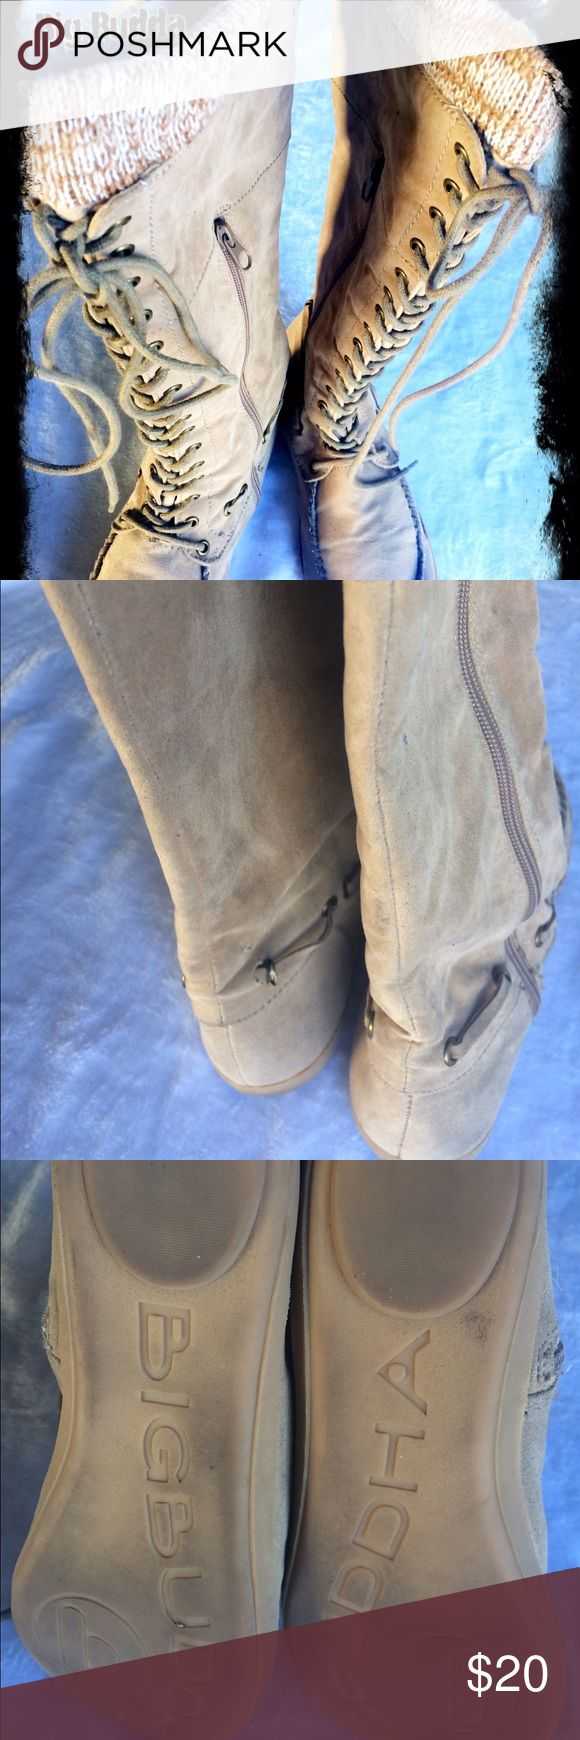 Big Buddha boots Saude Lace up showing signs of wearing. Still decent condition see pictures. Price reflects Big Buddha Shoes Lace Up Boots